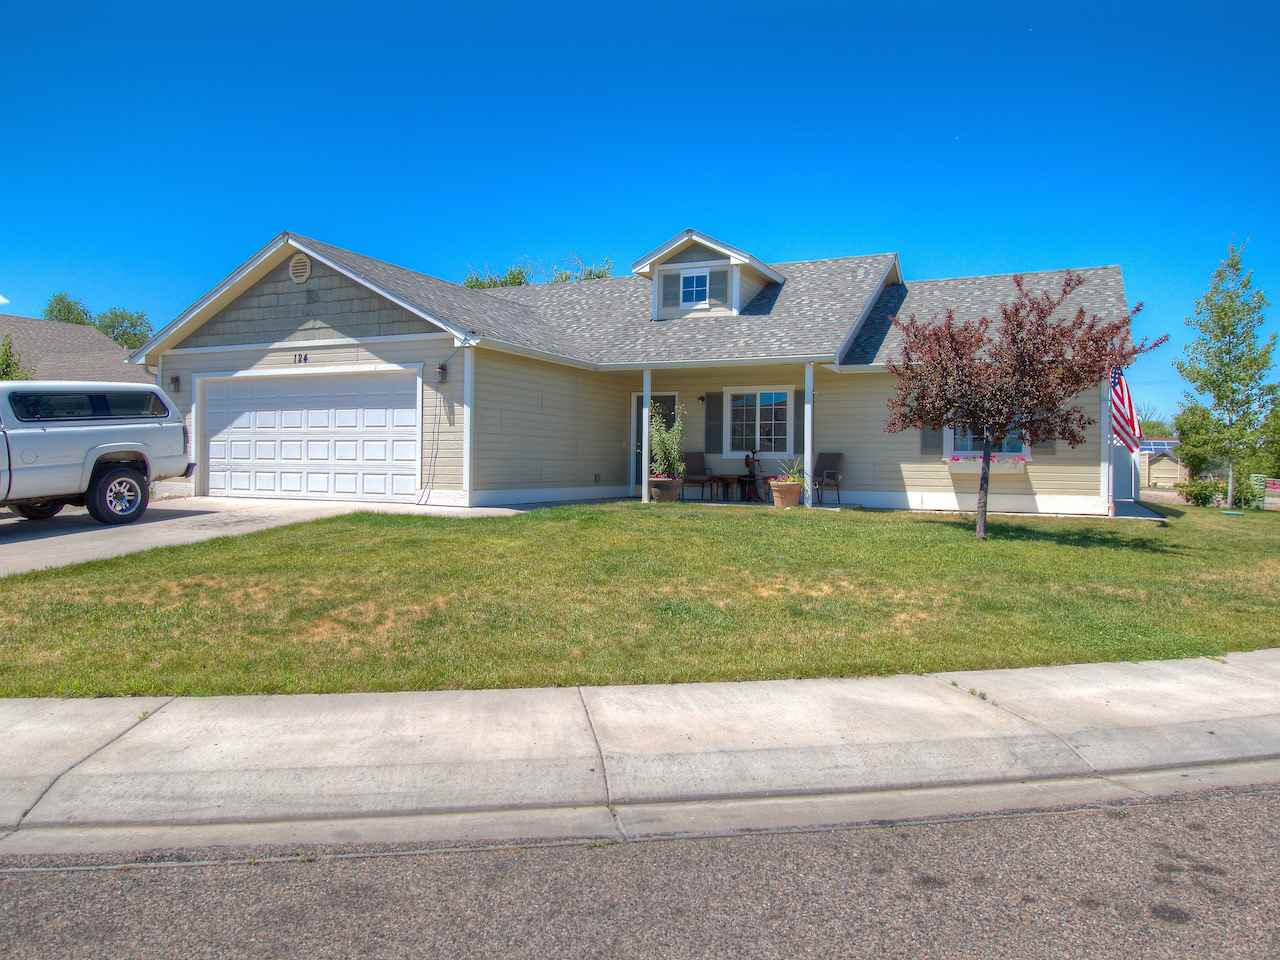 124 Kaley Street, Fruita, CO 81521